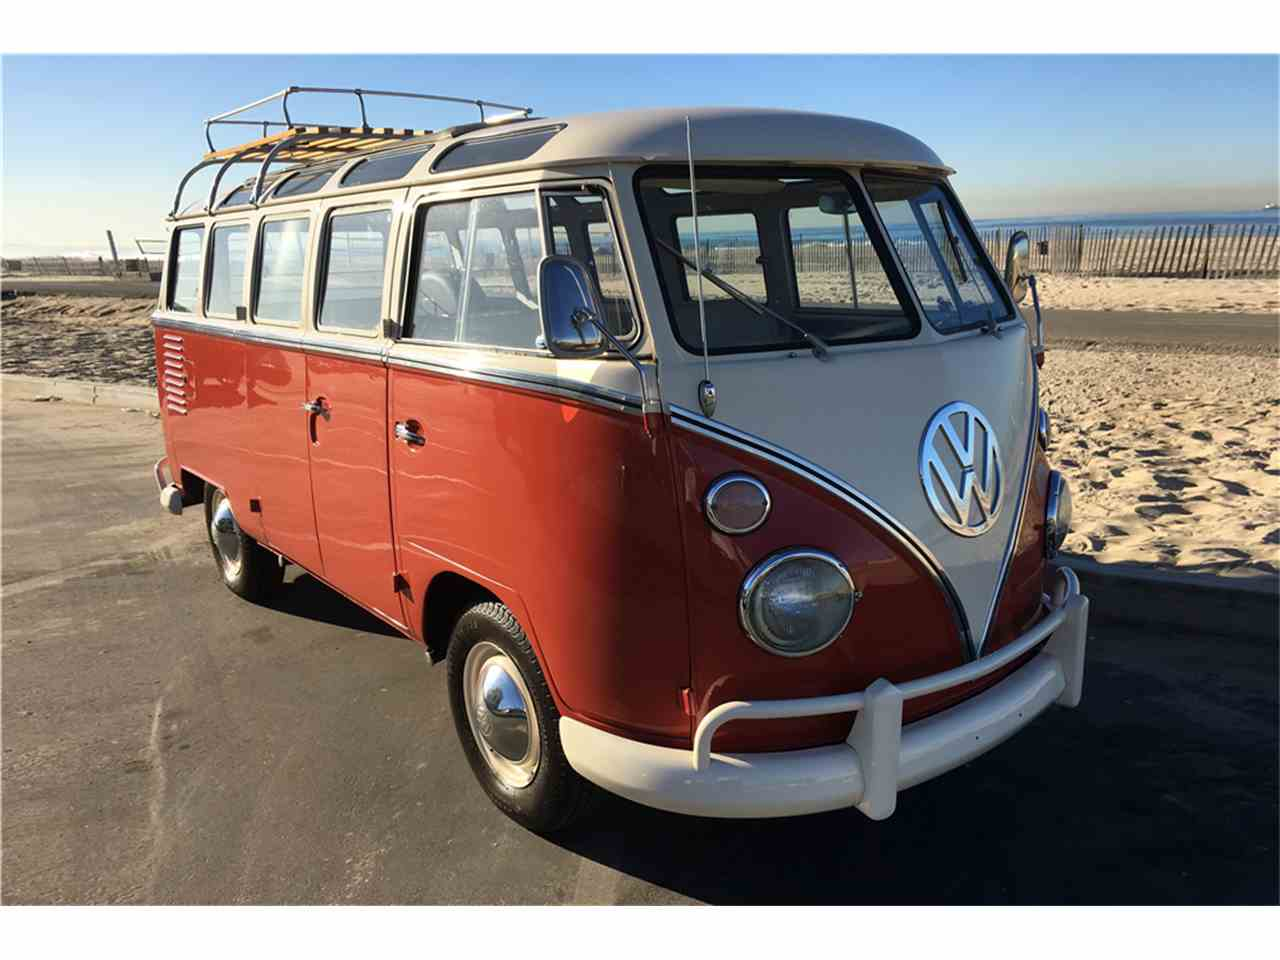 Pretty Ibanez Gio Wiring Small 3 Pickup Les Paul Wiring Diagram Rectangular Di Marizo 3 Coil Pickup Youthful Les Paul 3 Way Switch PurpleHow To Wire Guitar Classic Volkswagen Bus For Sale On ClassicCars